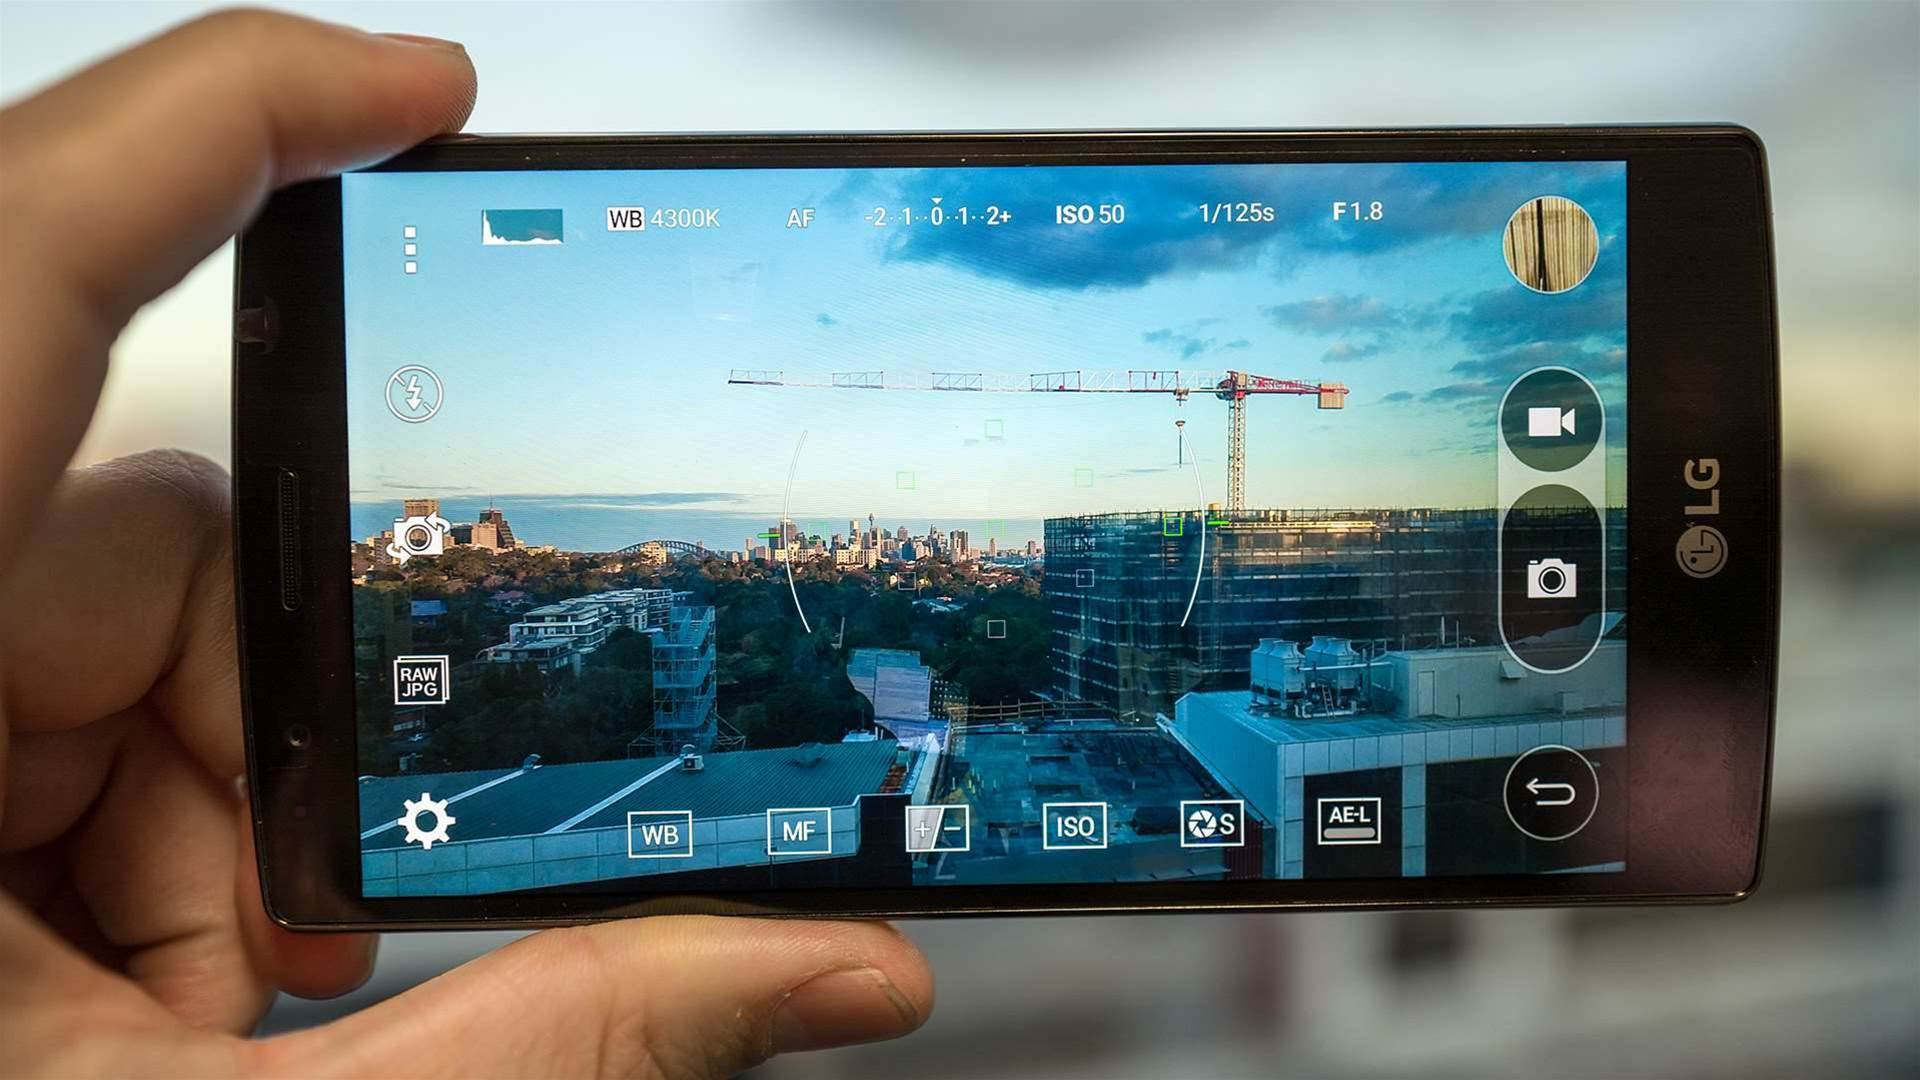 The camera phone game has stepped up to a new level with the 16MP LG G4 that houses a F1.8 lens, gives users manual controls and shoots in RAW.